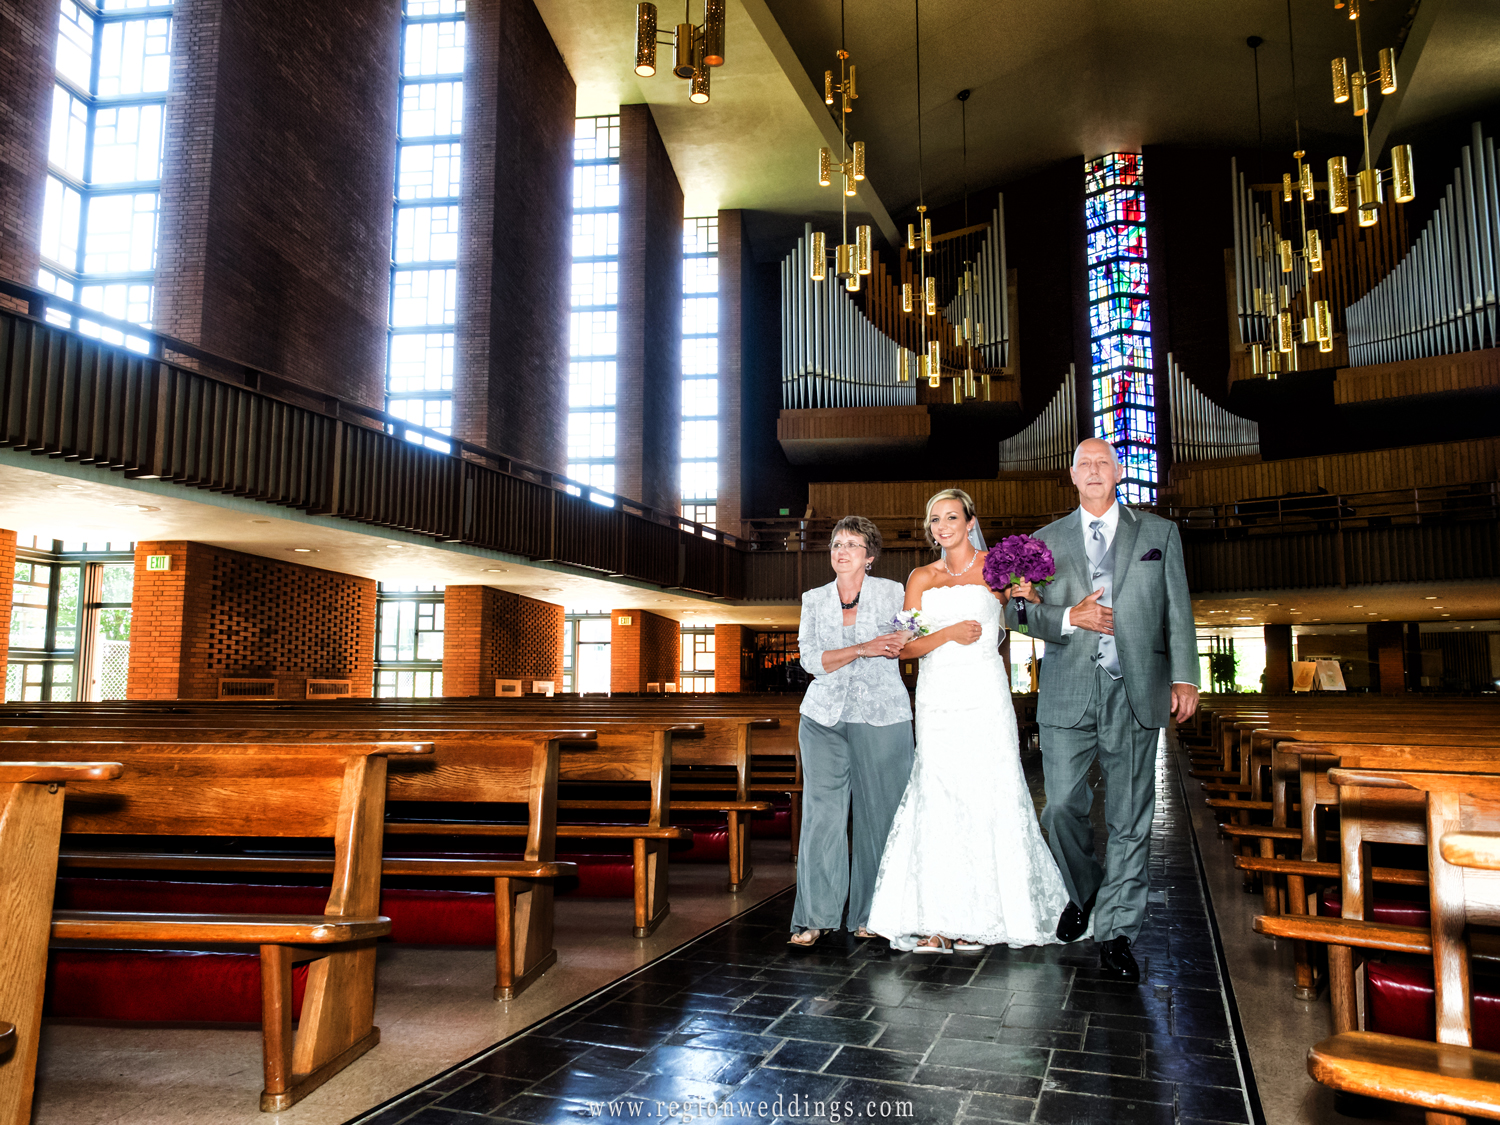 The bride is accompanied by her parents as she walks down the aisle at The Chapel of the Resurrection.